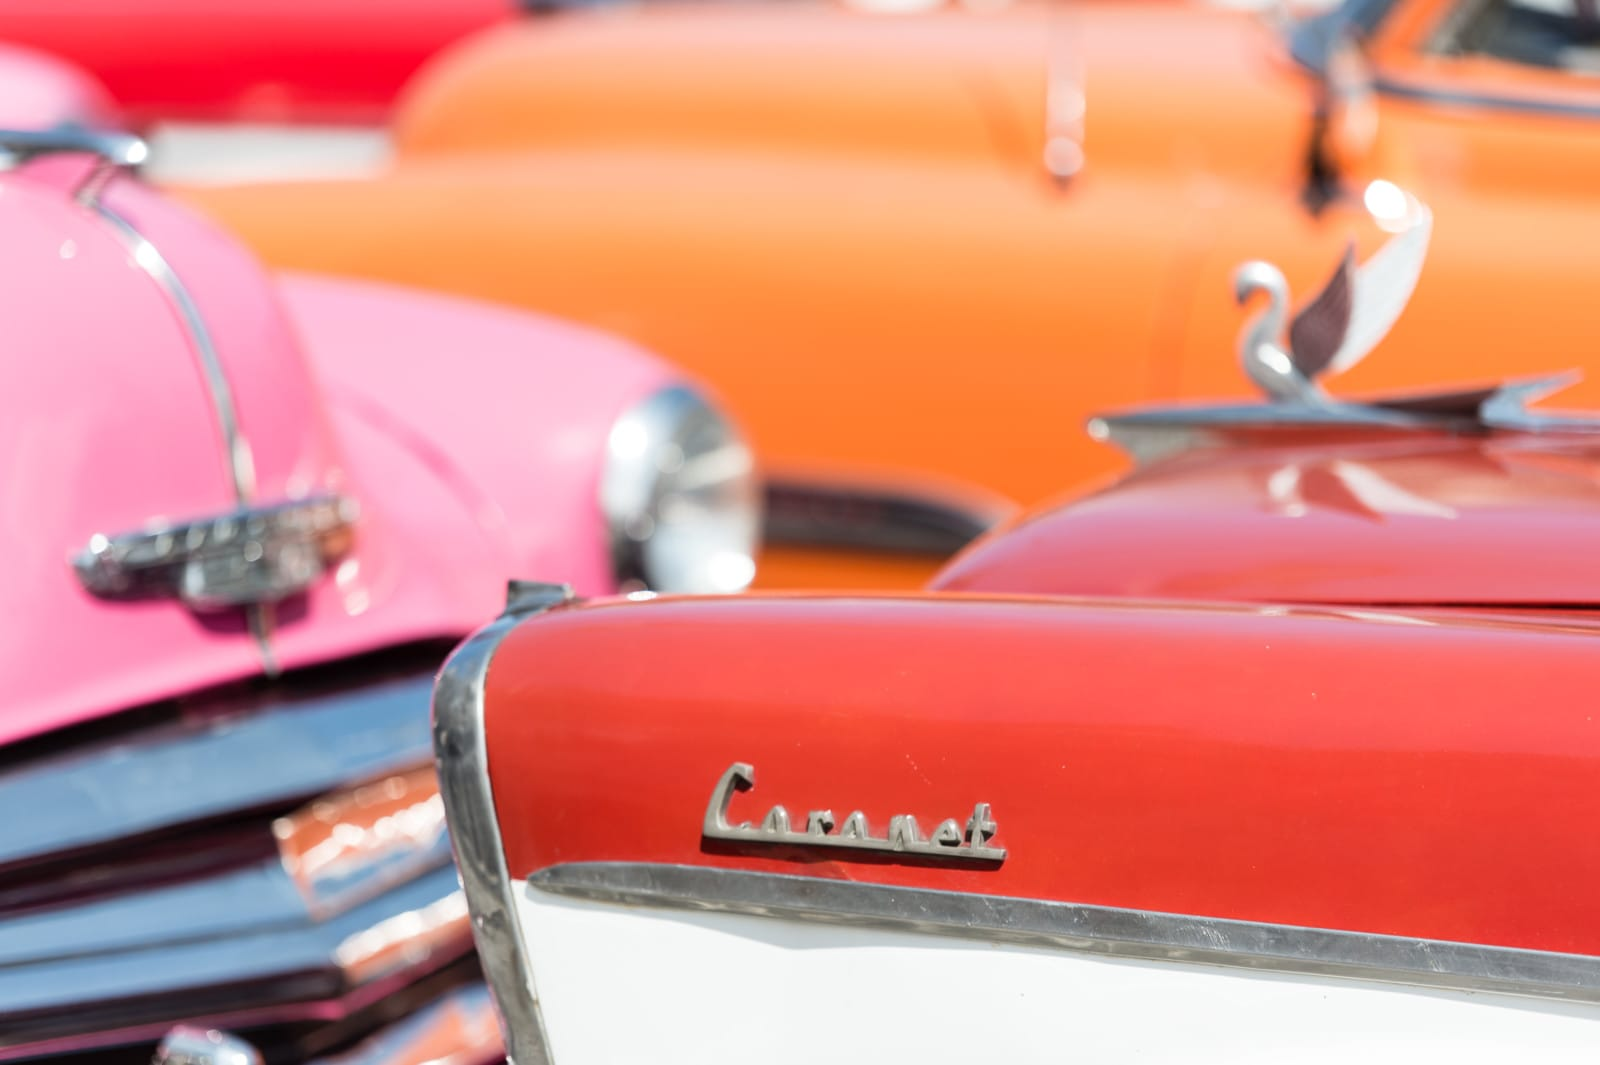 classic-cars-bright-color-havana-cuba-london-freelance-photographer-richard-isaac-3200